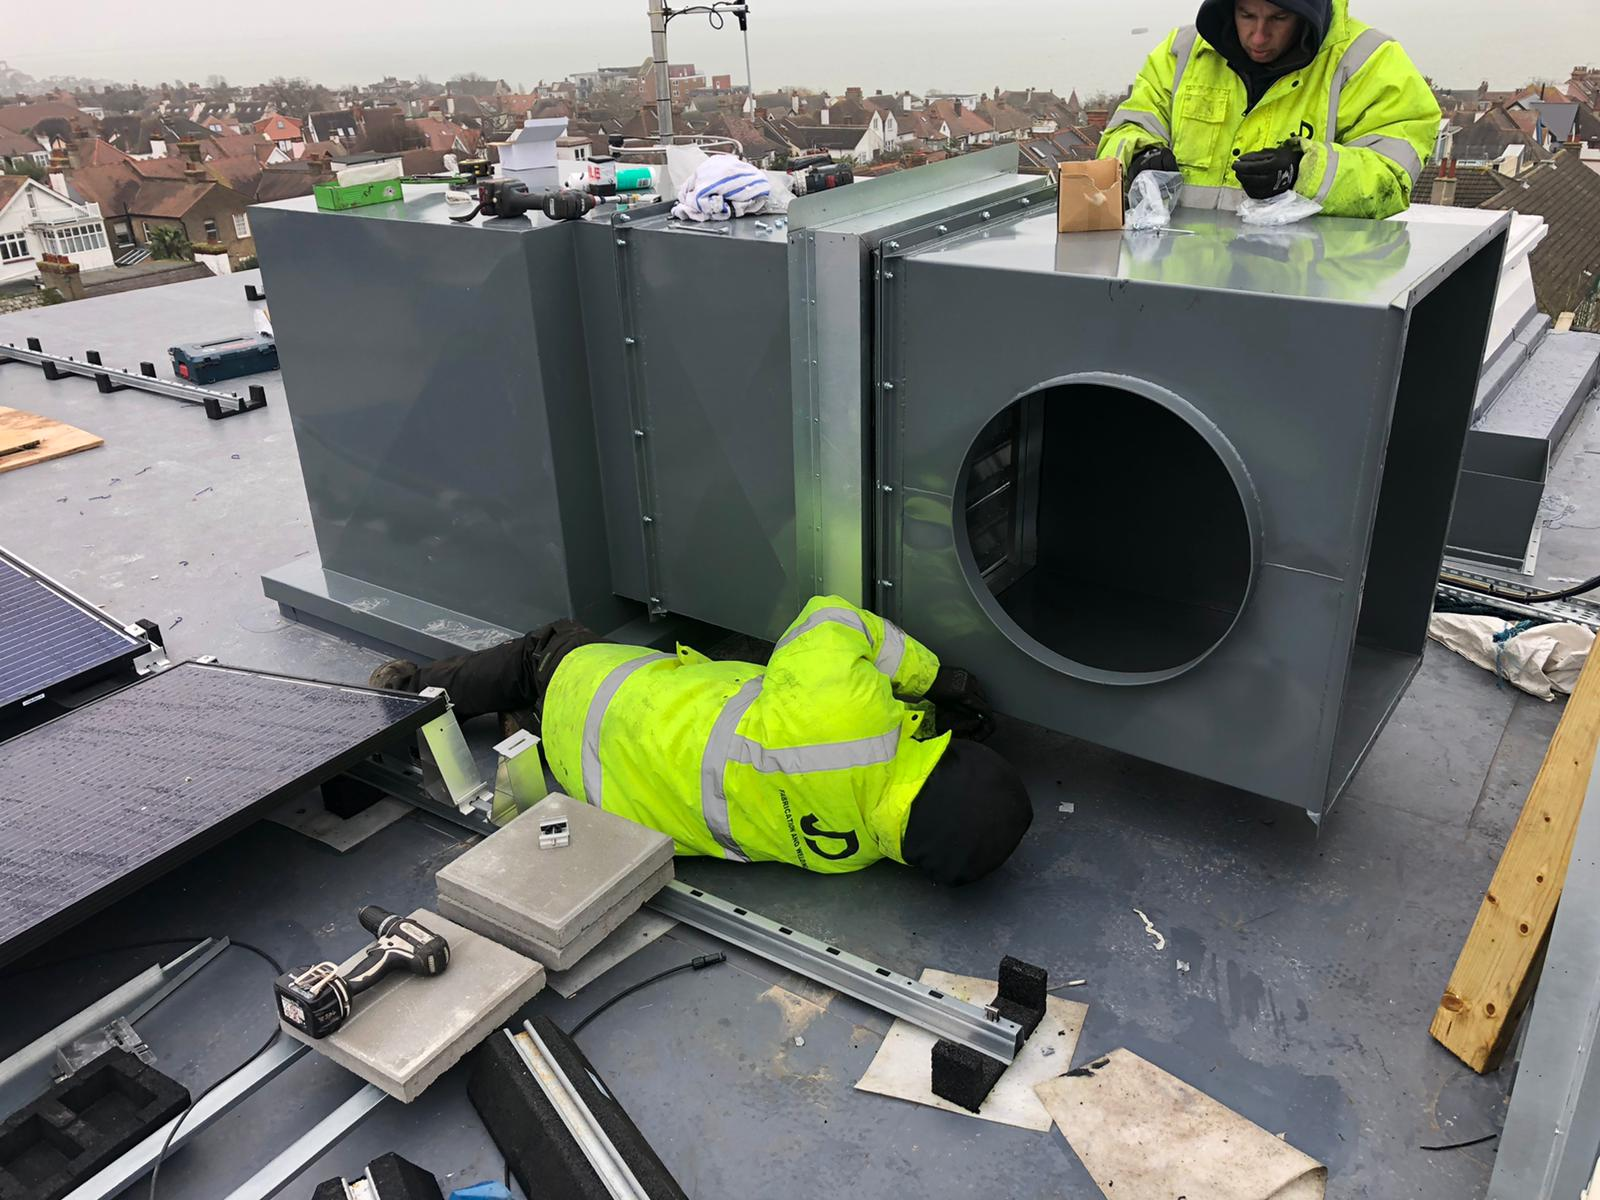 commercial ducting fabrication pipework welding Essex London Hotel contractor